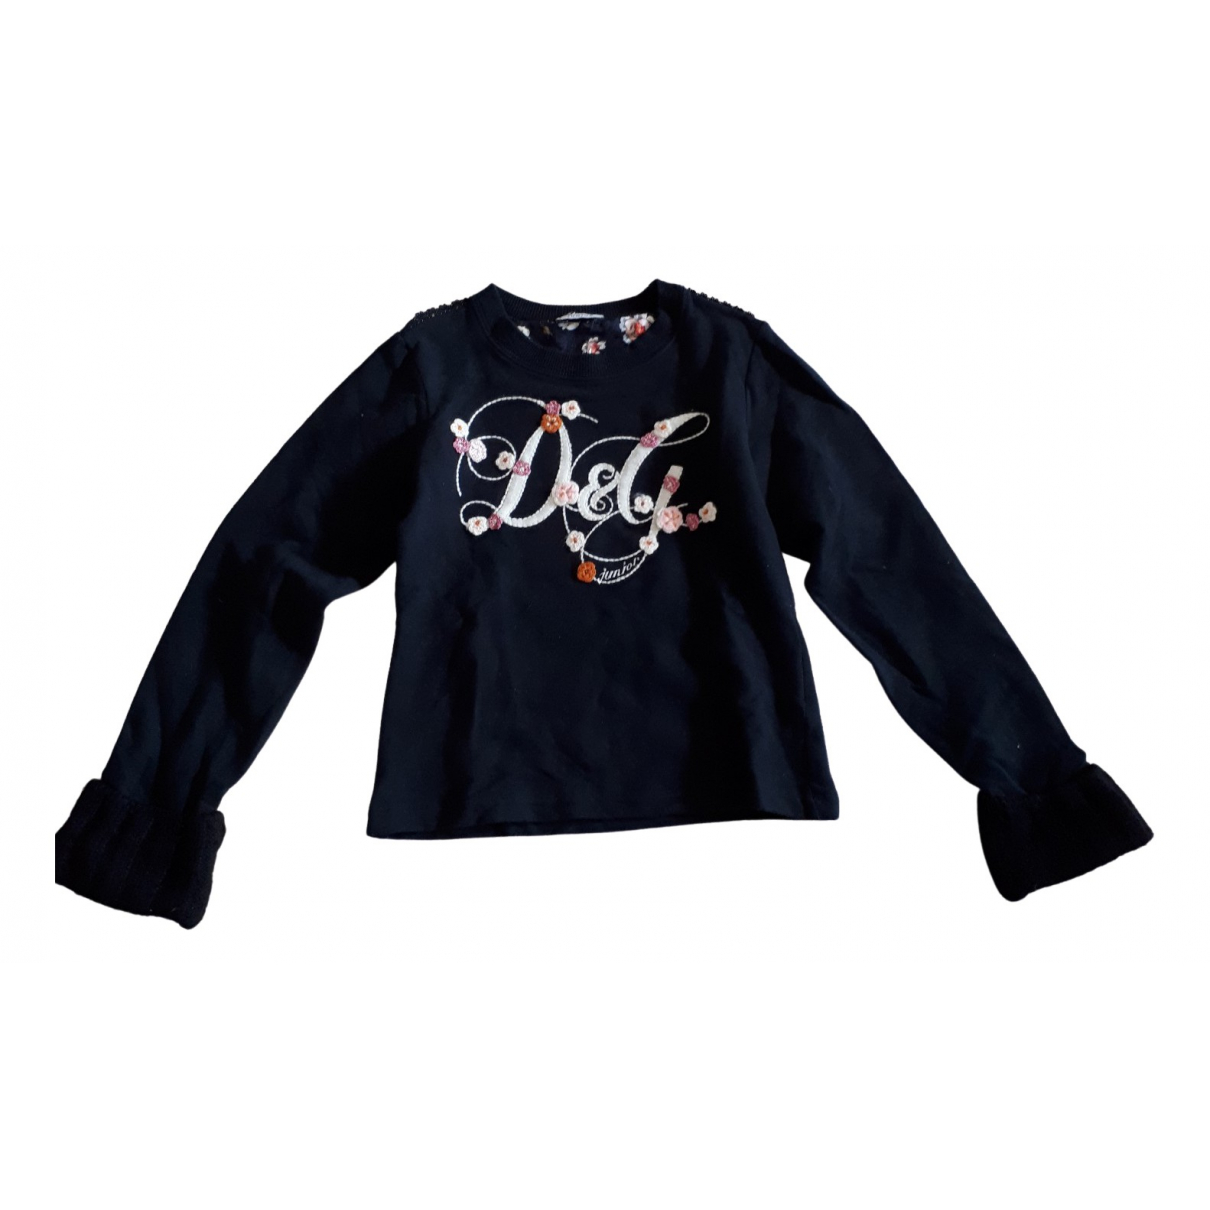 D&g \N Black Cotton Knitwear for Kids 8 years - up to 128cm FR